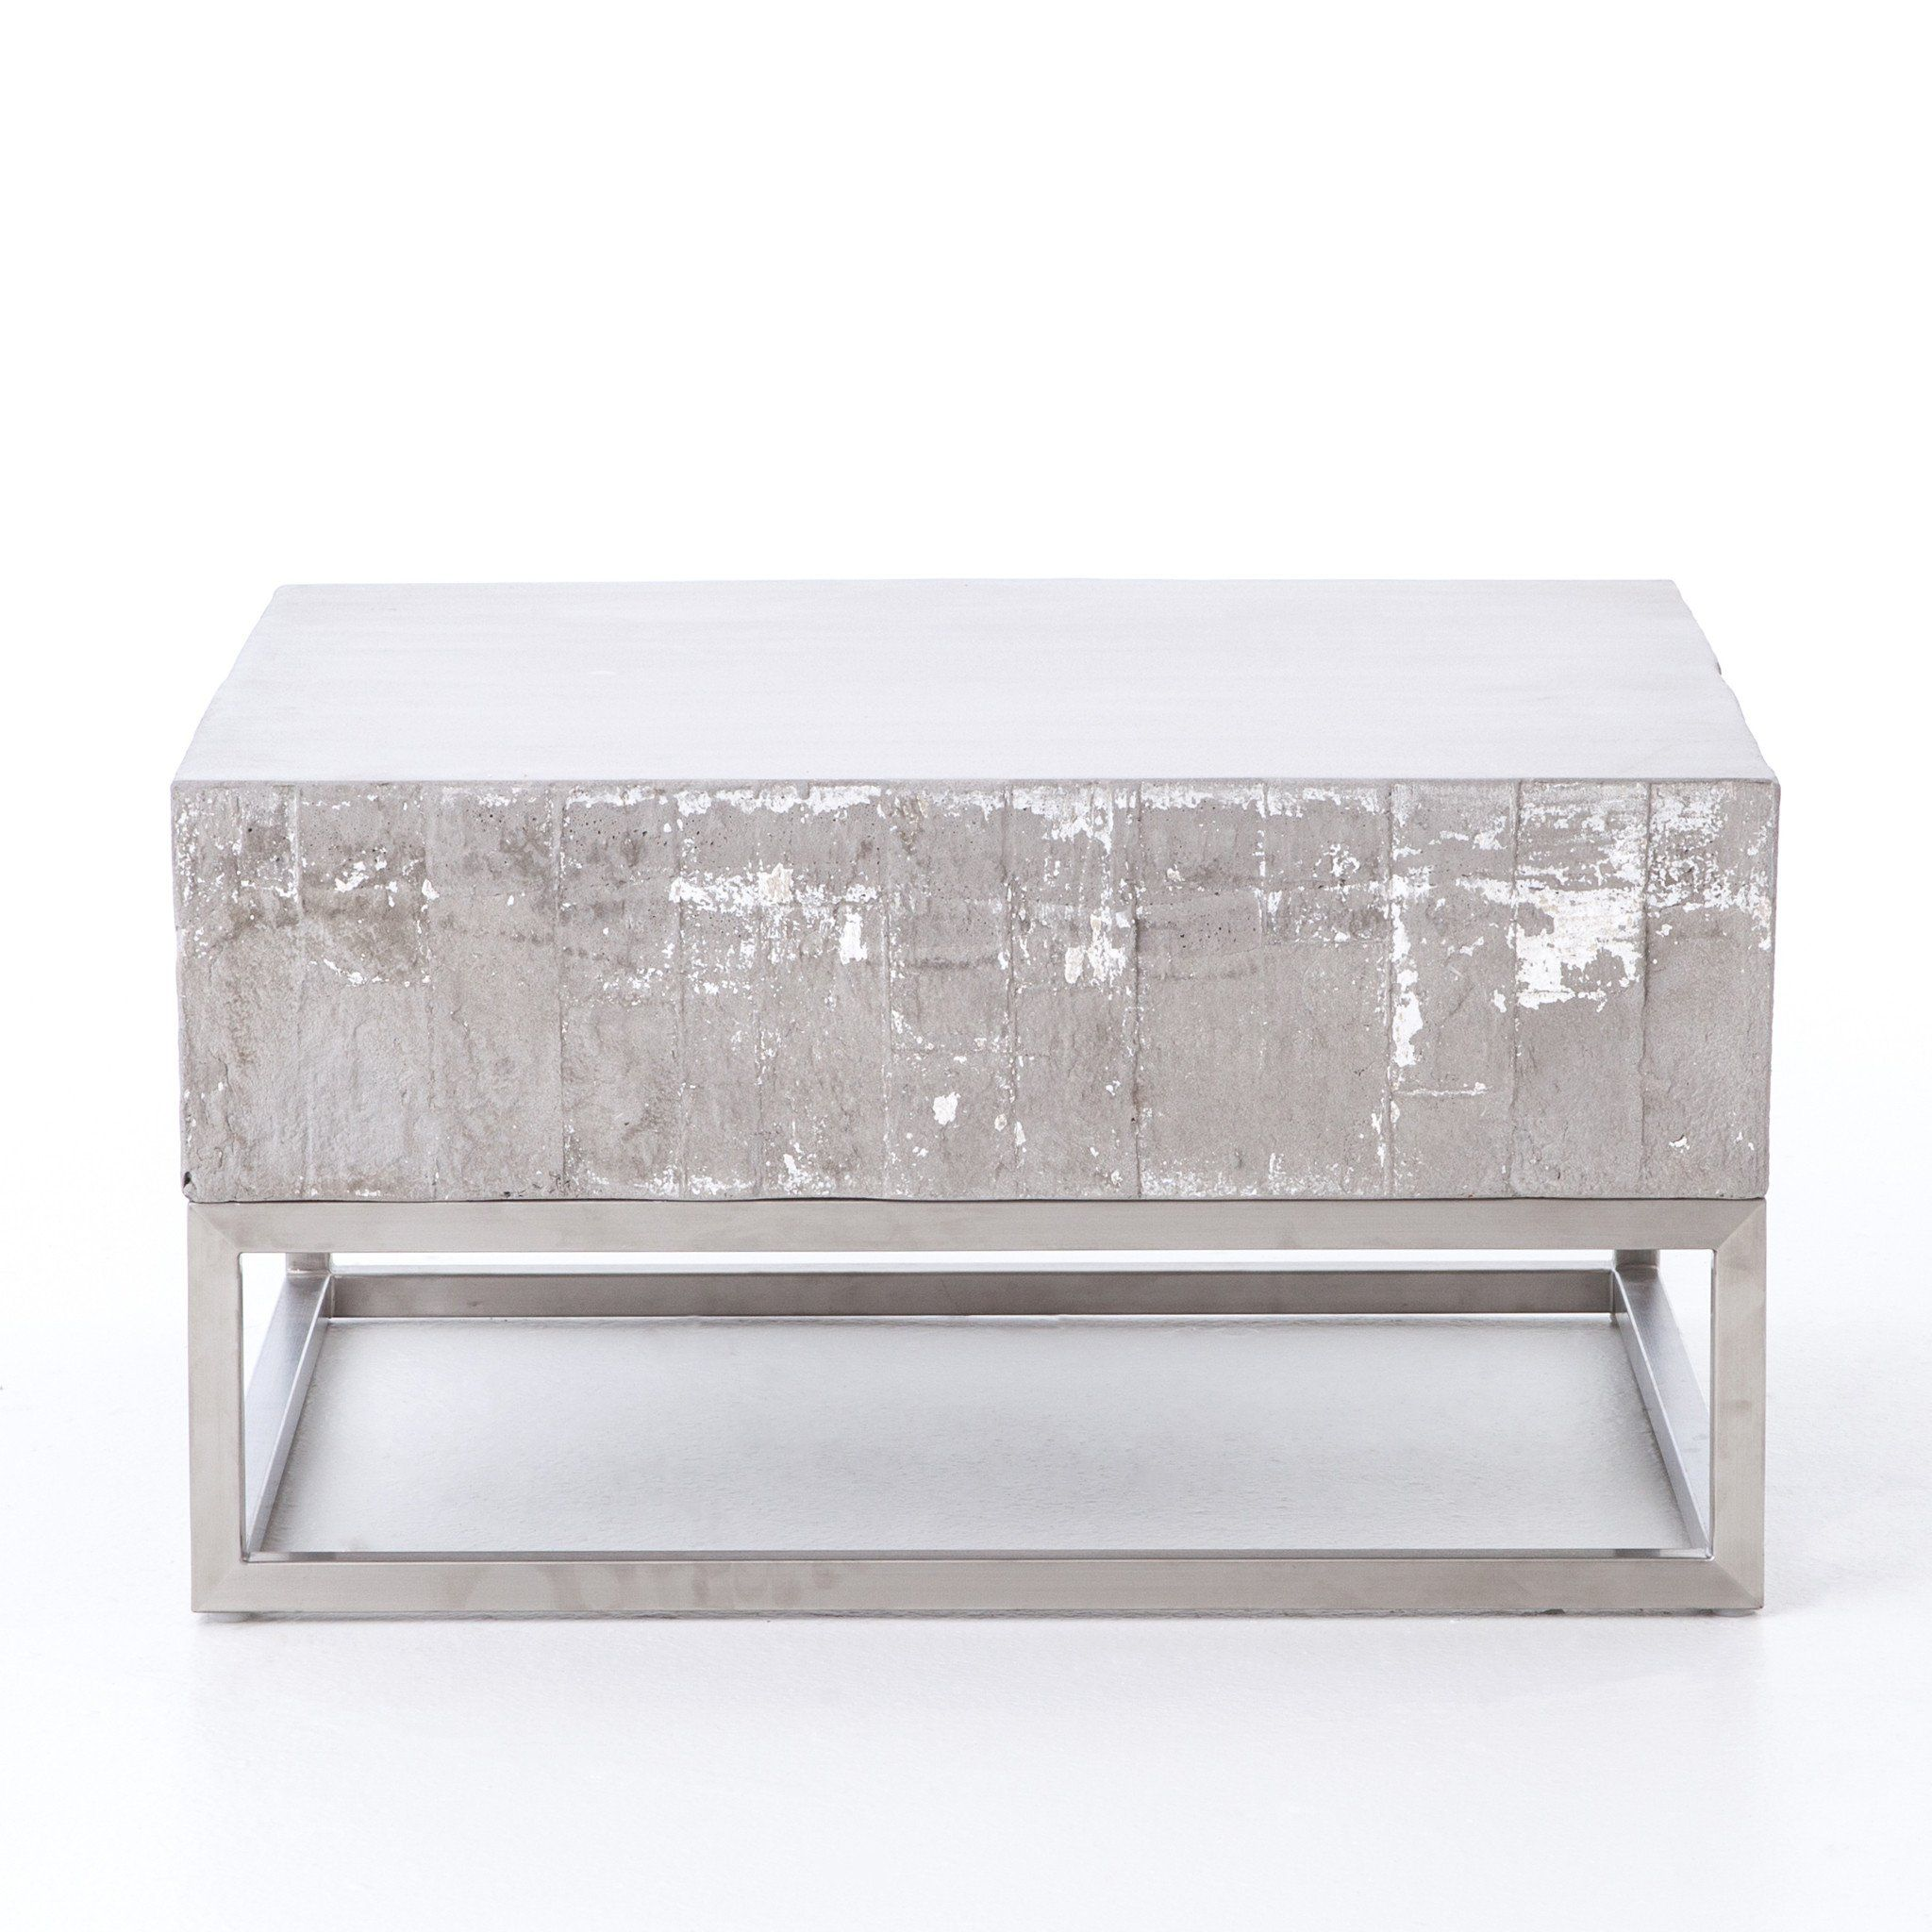 10580d1cdc4fd1ba68913deddebfa3ad Top Result 50 Luxury Black and White Coffee Table Image 2017 Shdy7